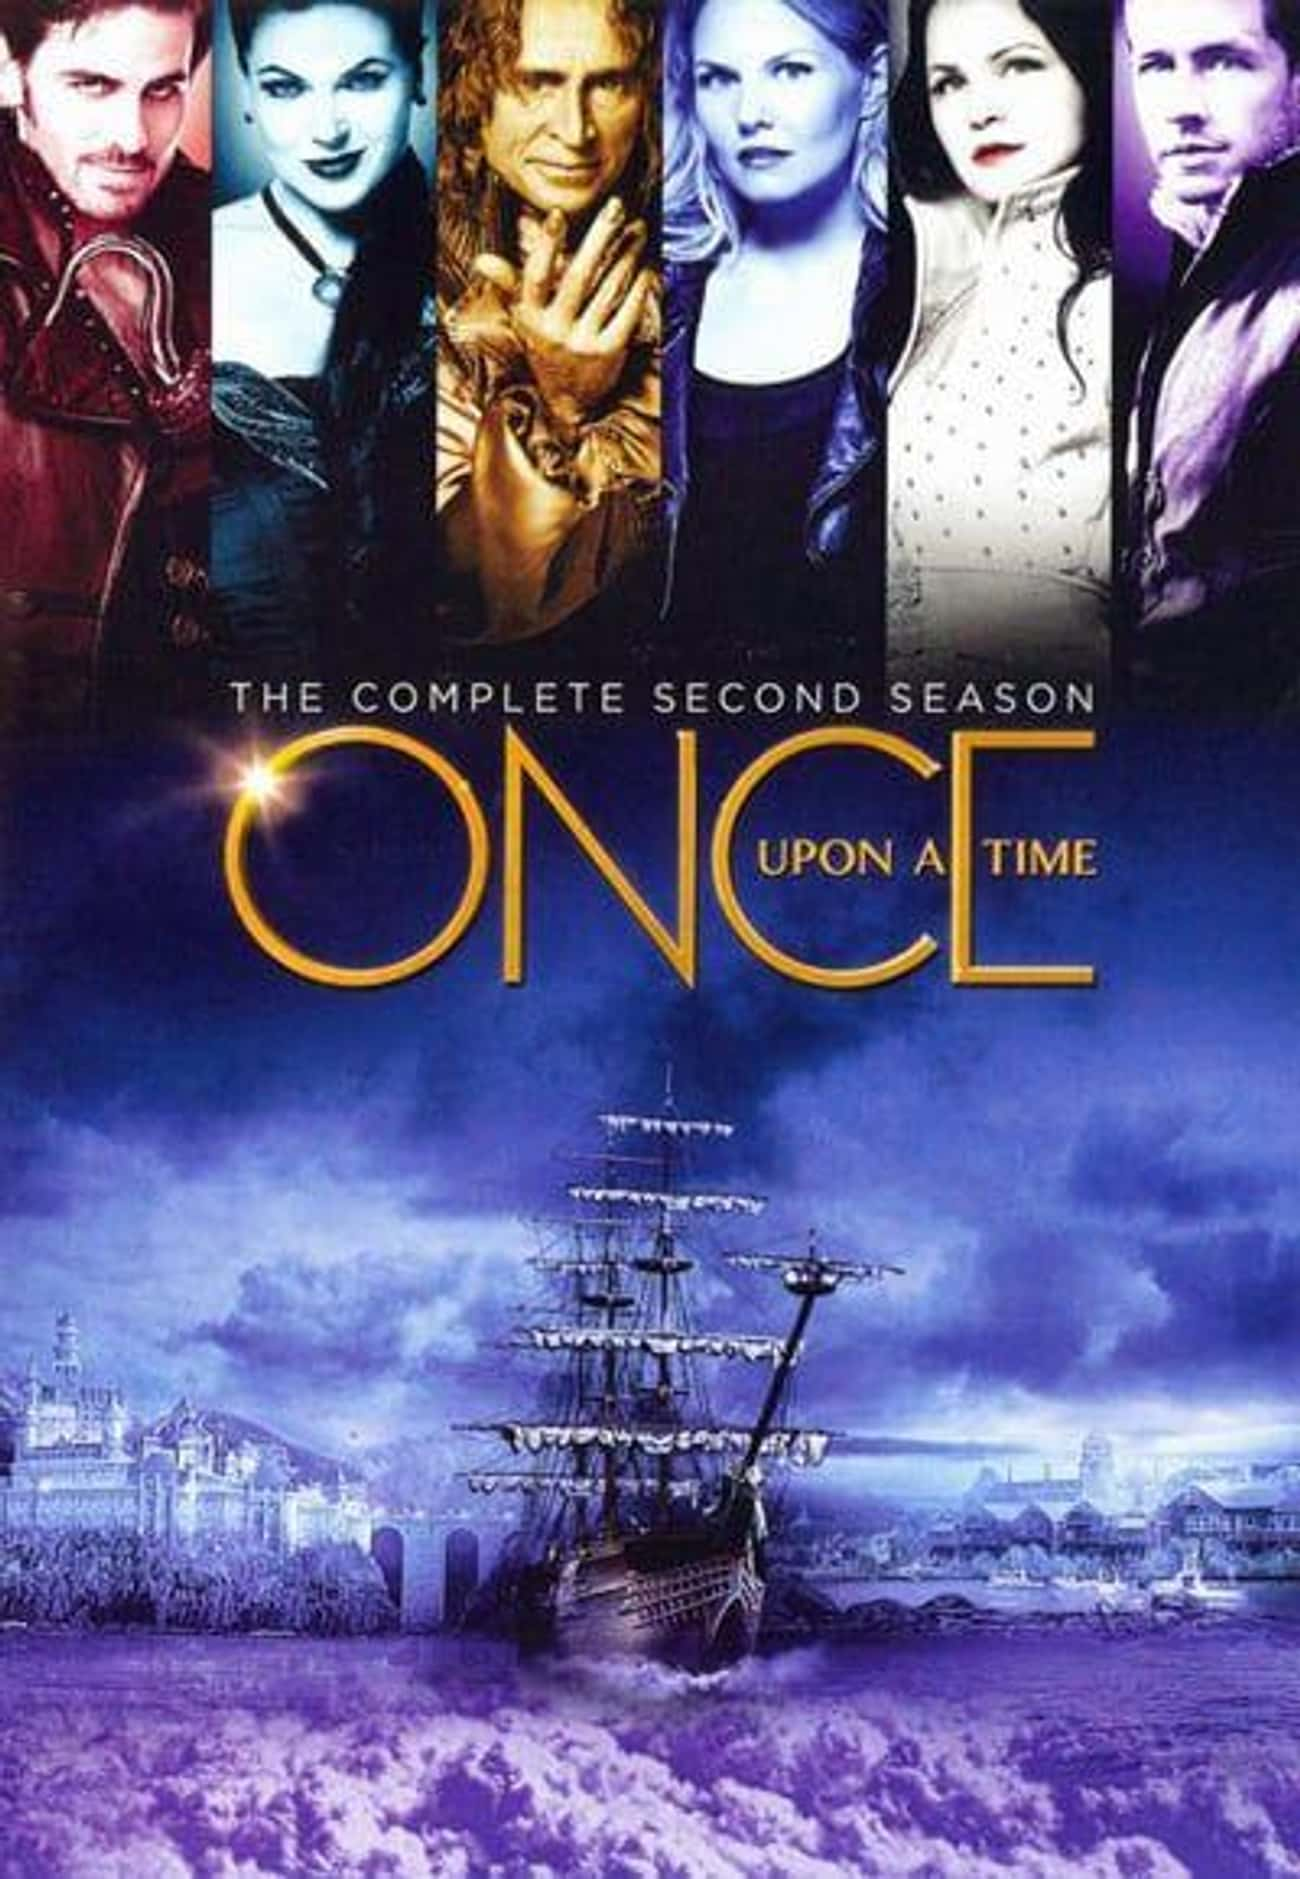 Once Upon a Time - Season 2 is listed (or ranked) 3 on the list The Best Seasons of Once Upon a Time